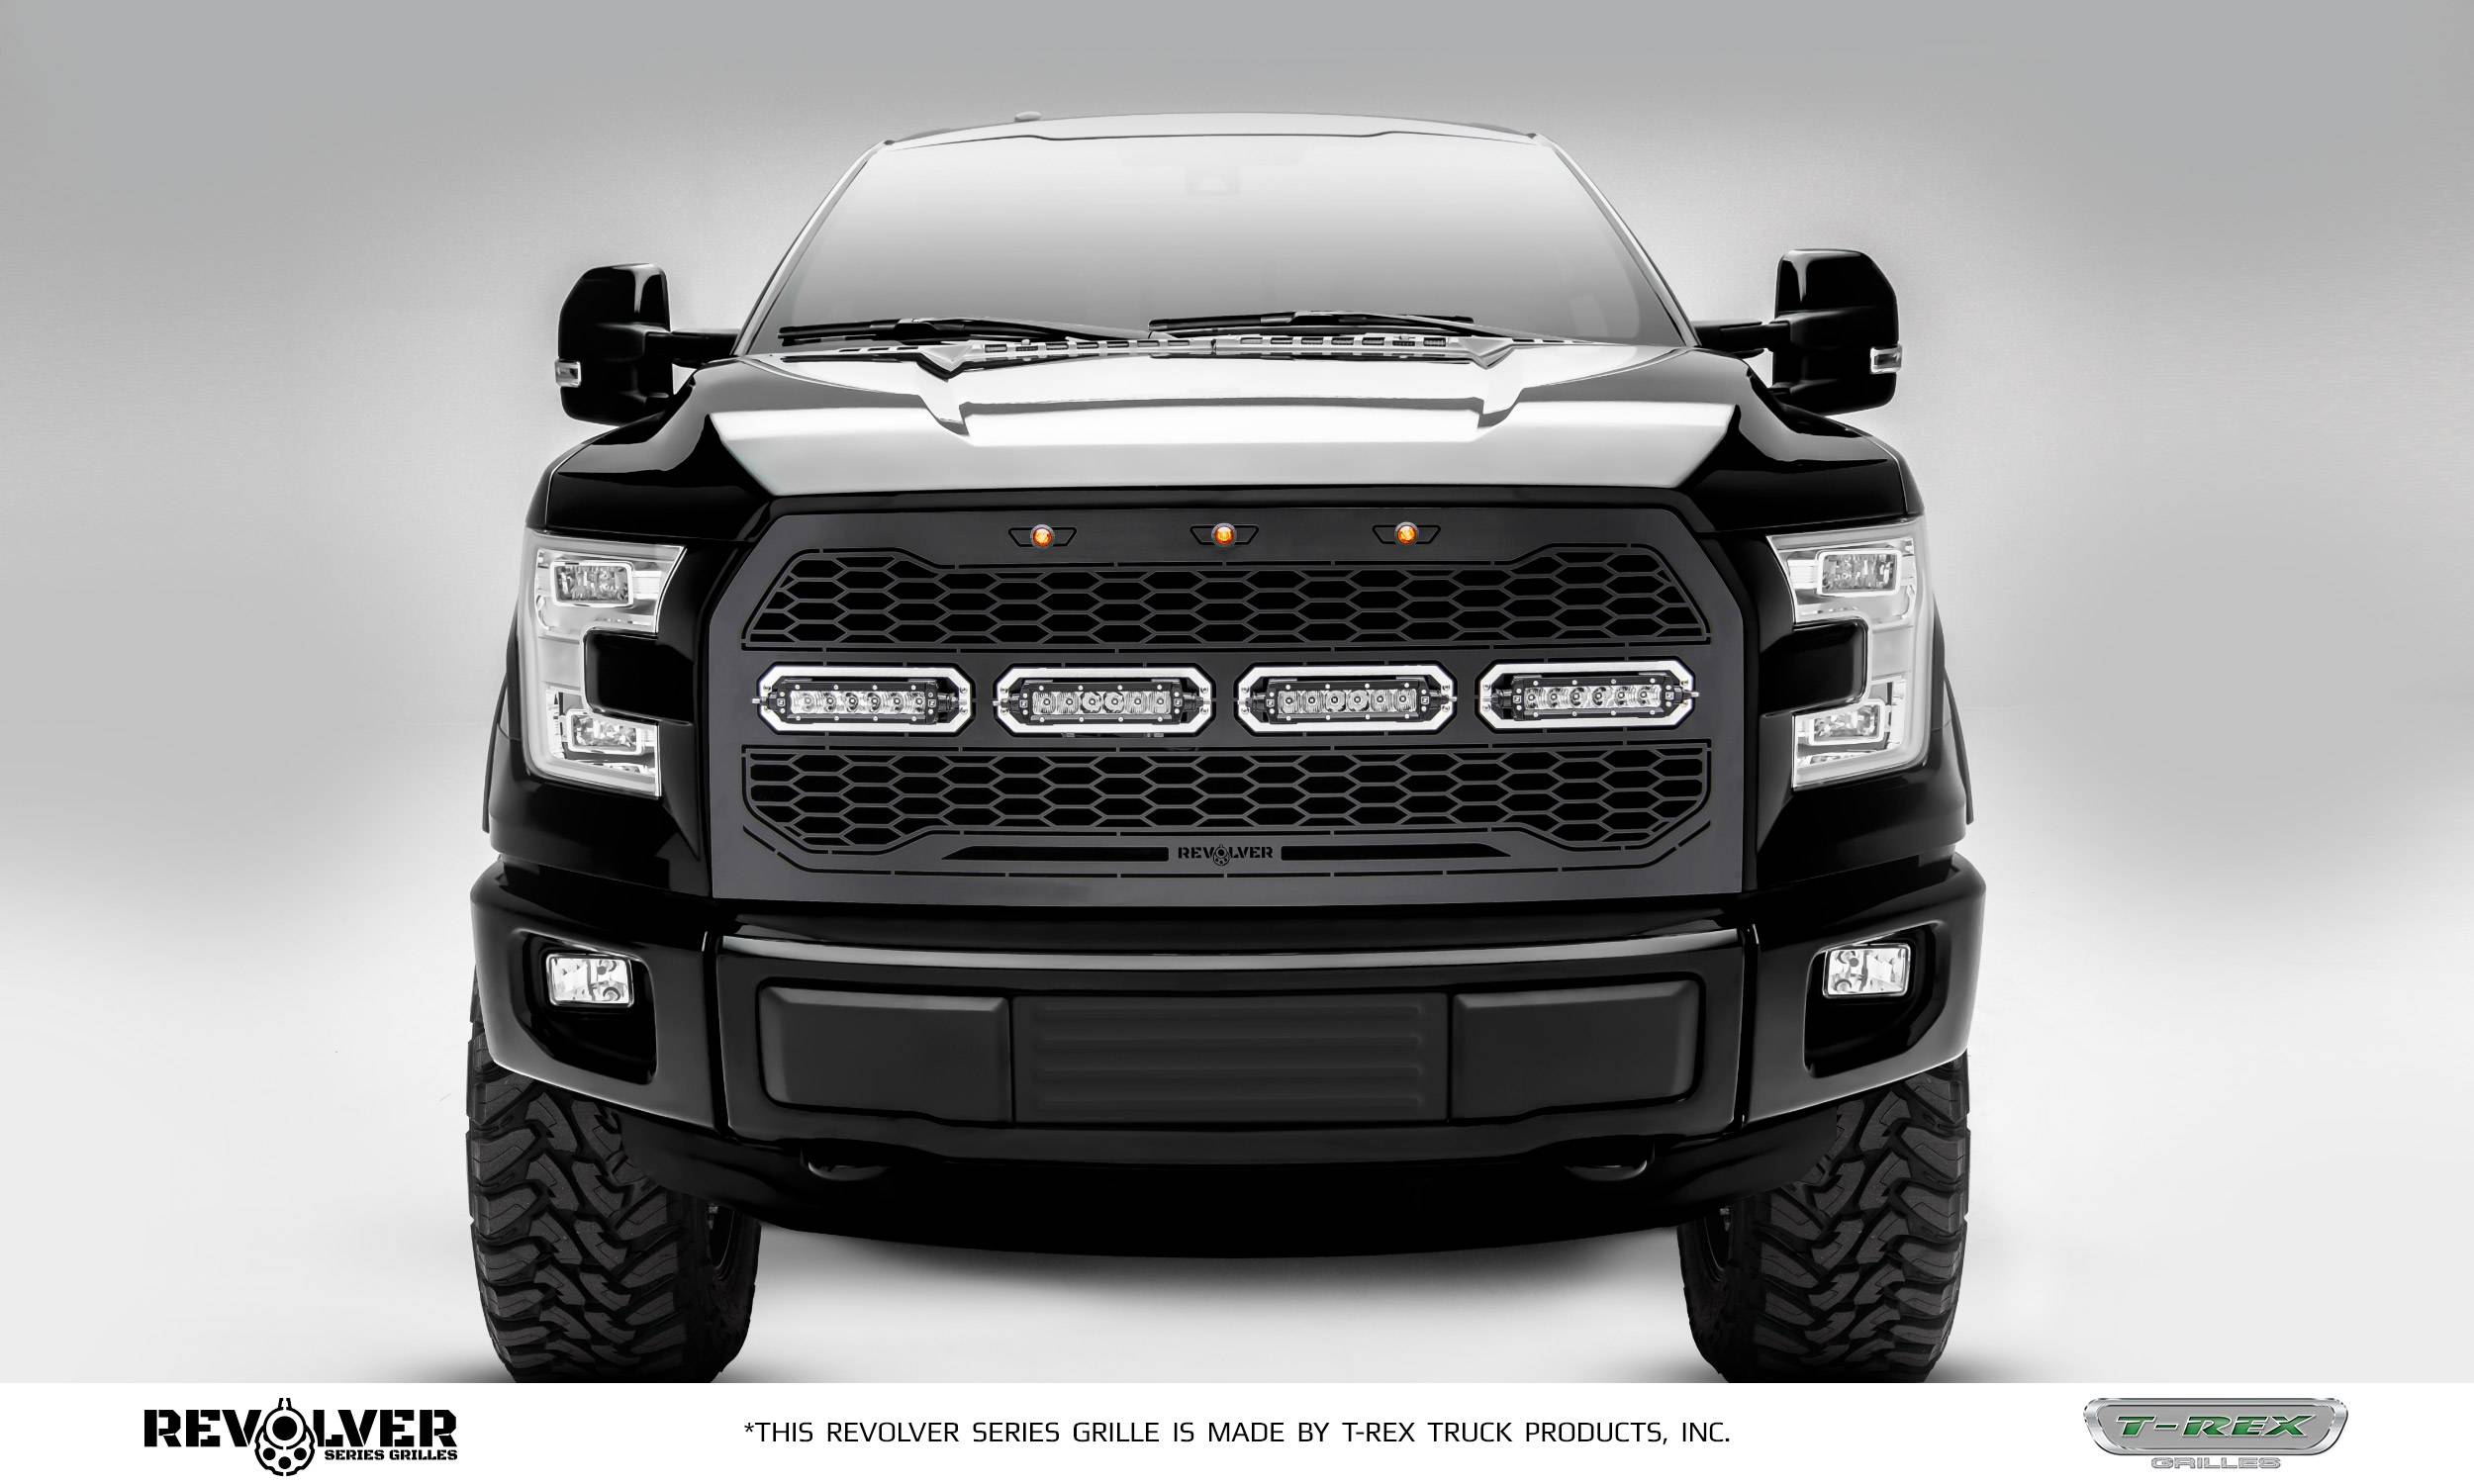 "T-REX Grilles - Ford F-150 - Revolver Series - w/o Forward Facing Camera - Main Replacement Grille w/ (4) 6"" Slim Line Single Row LED Light Bar - Part # 6515731"